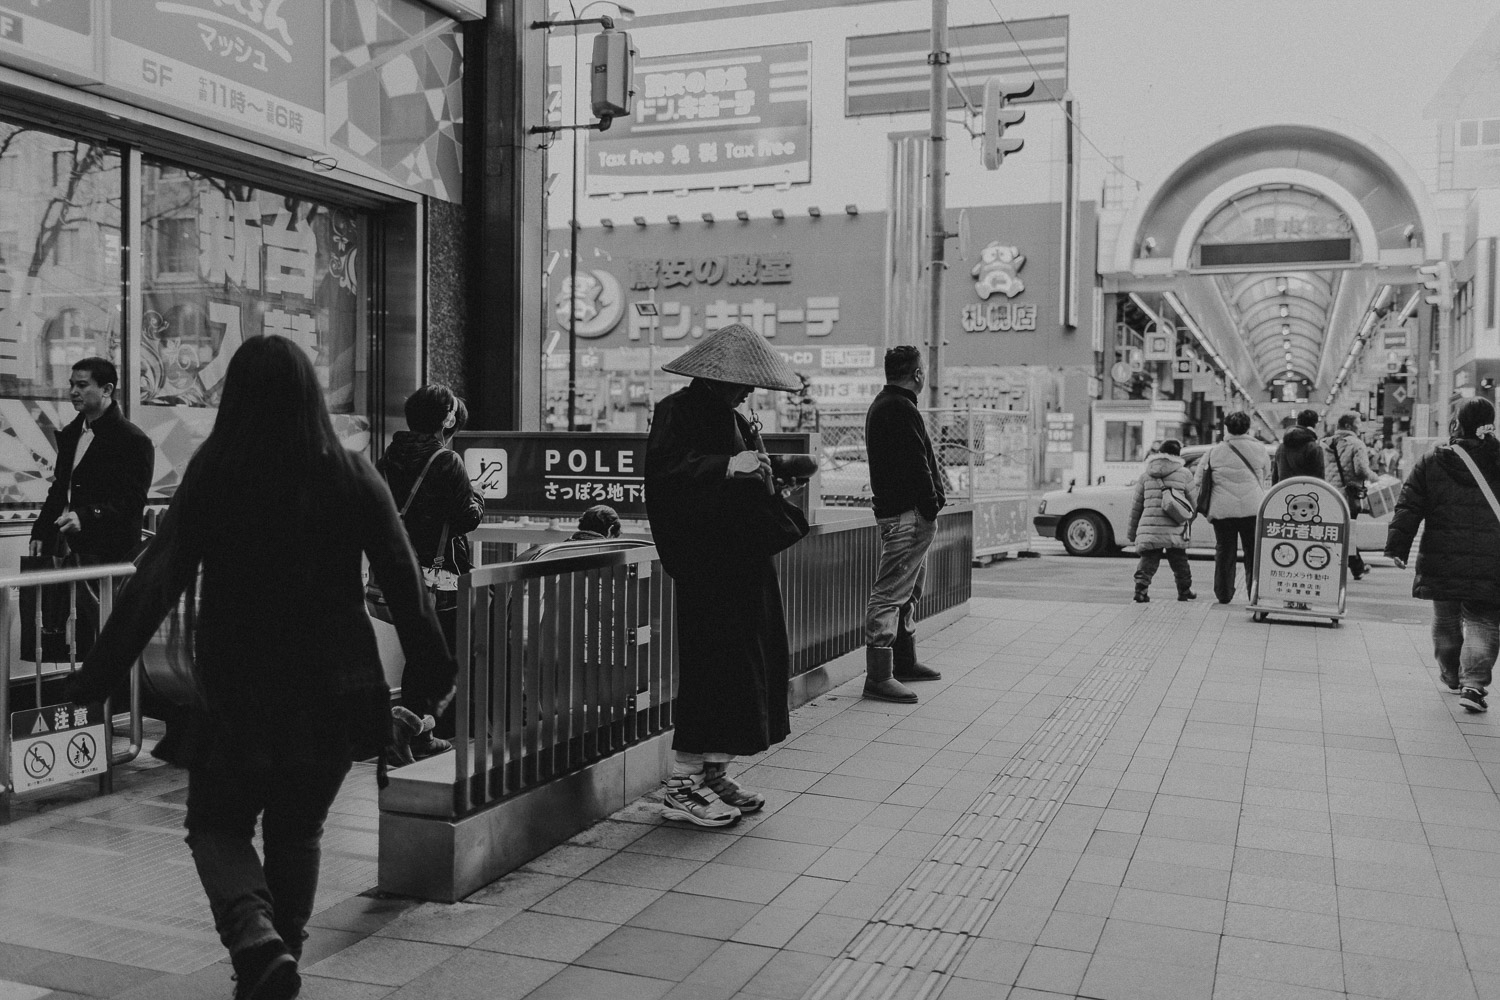 Black and White image of Japanese monk in shopping district